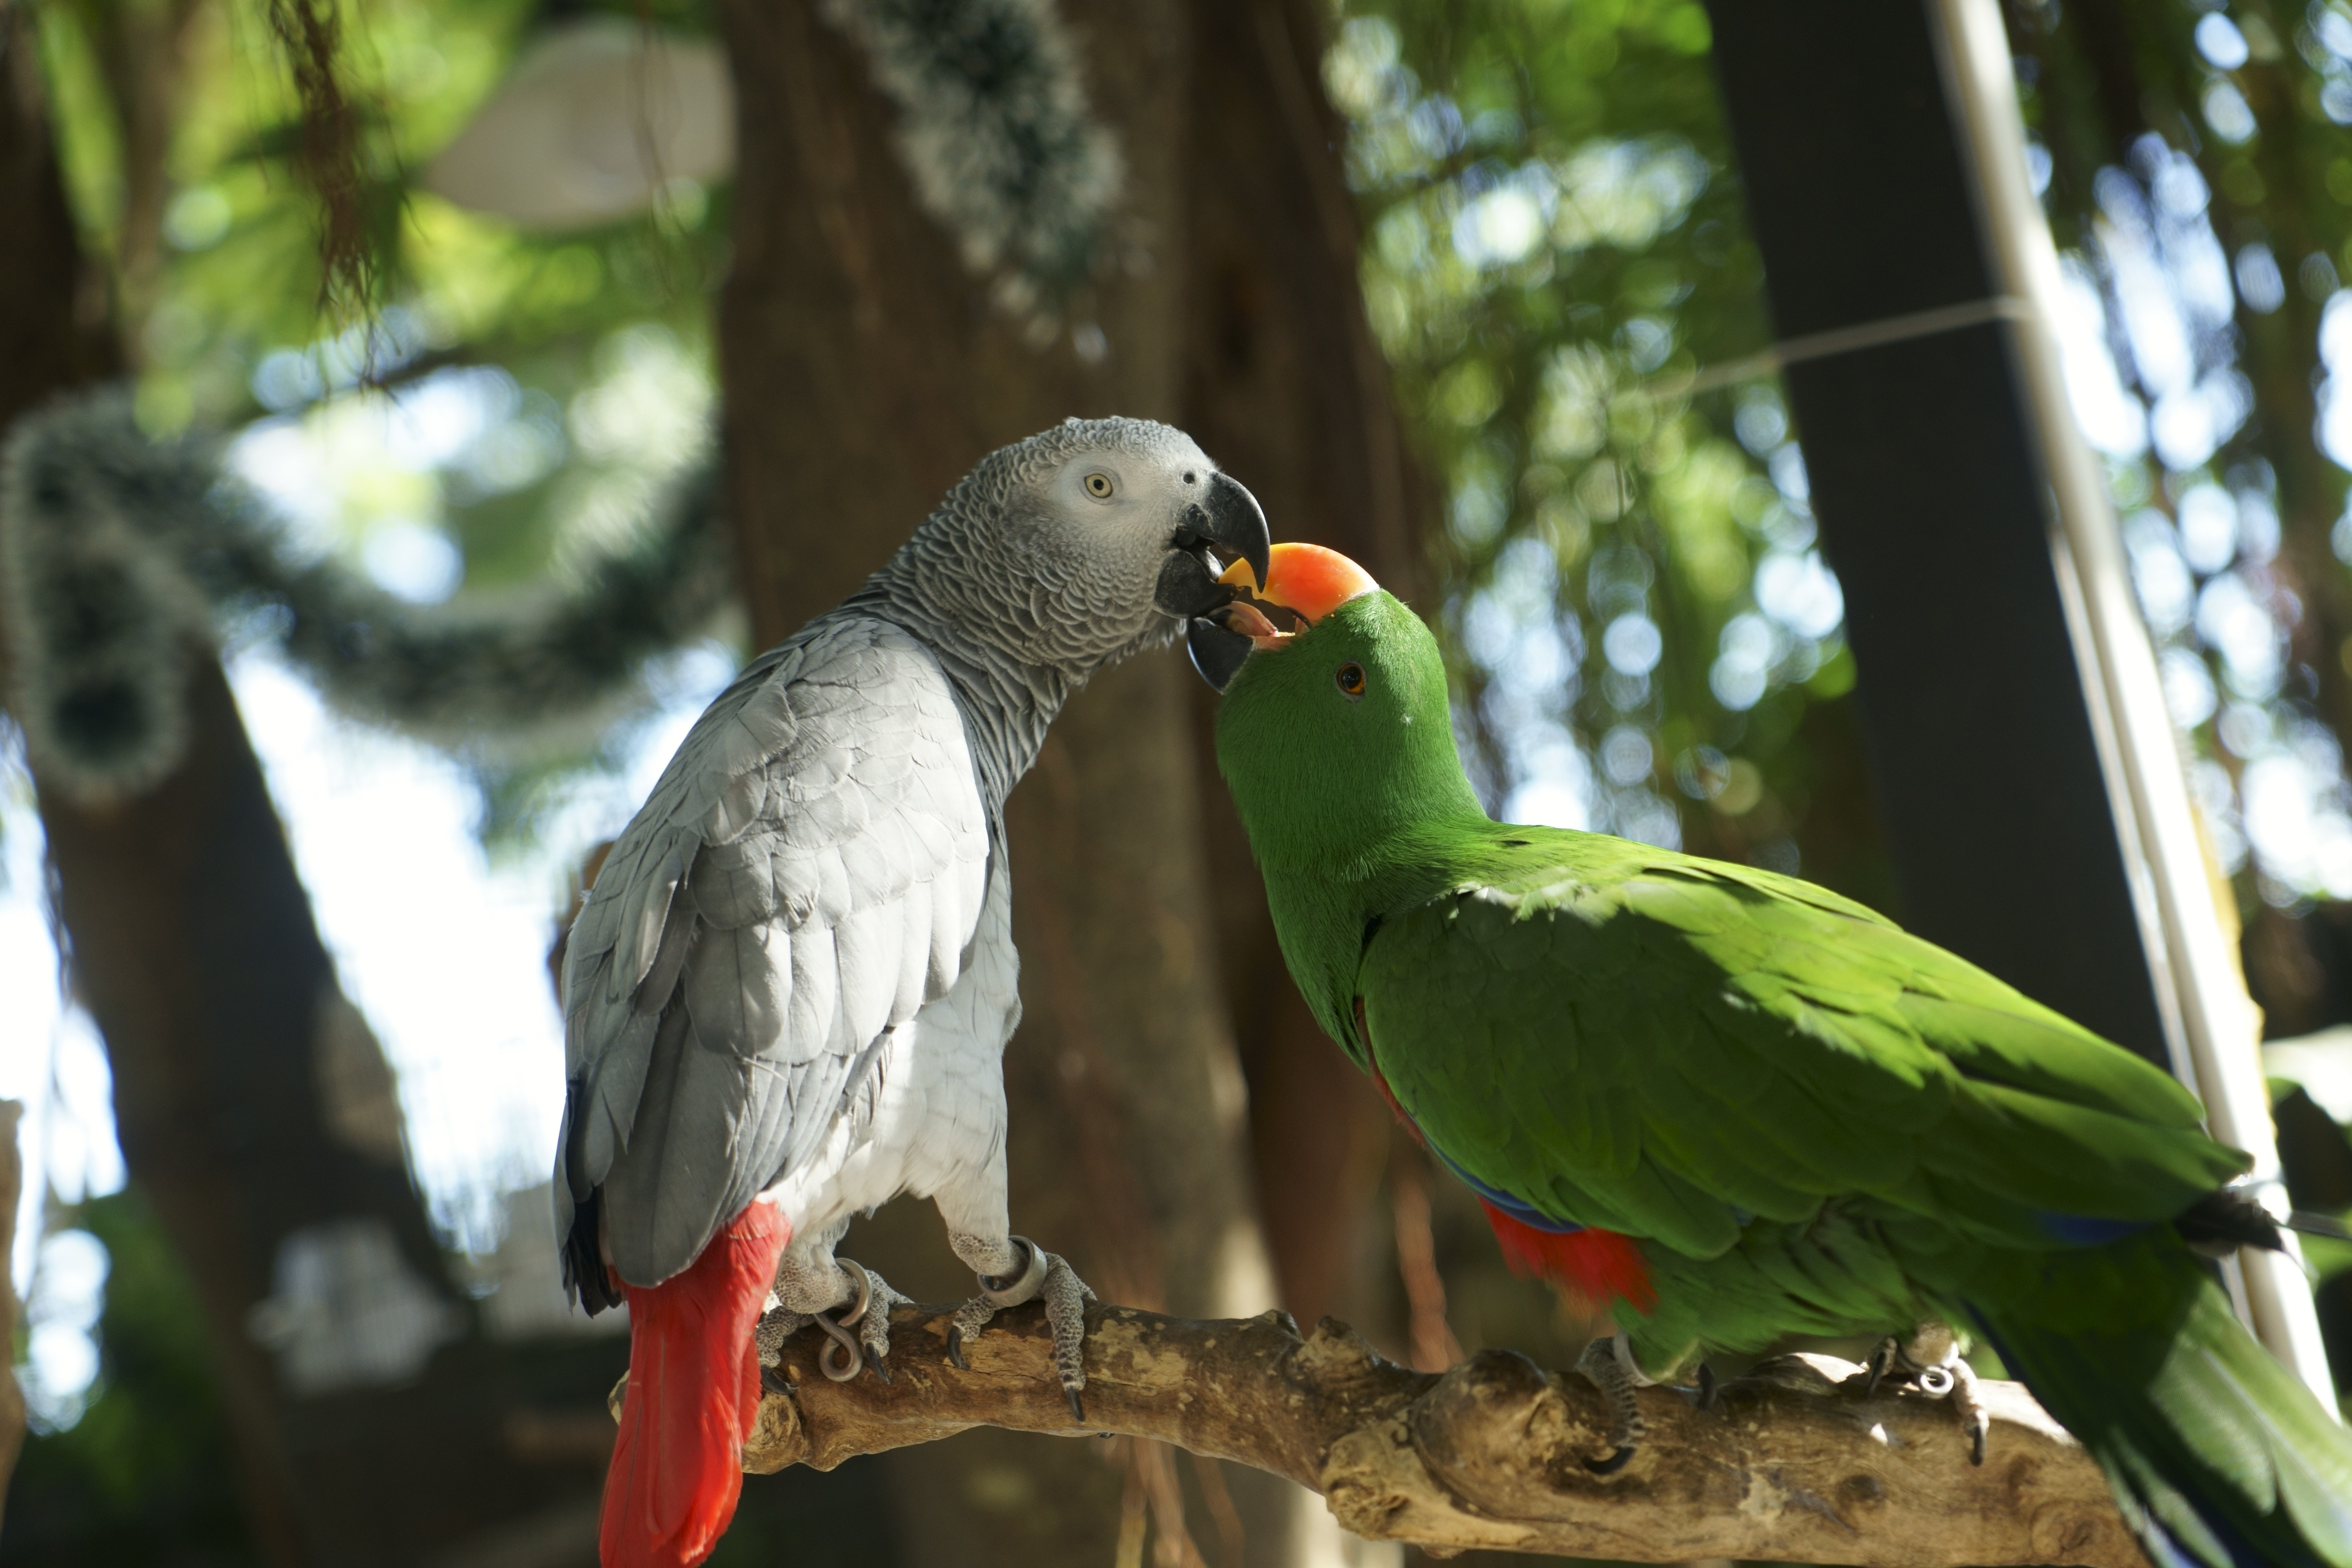 African Gray Parrot and green parrot